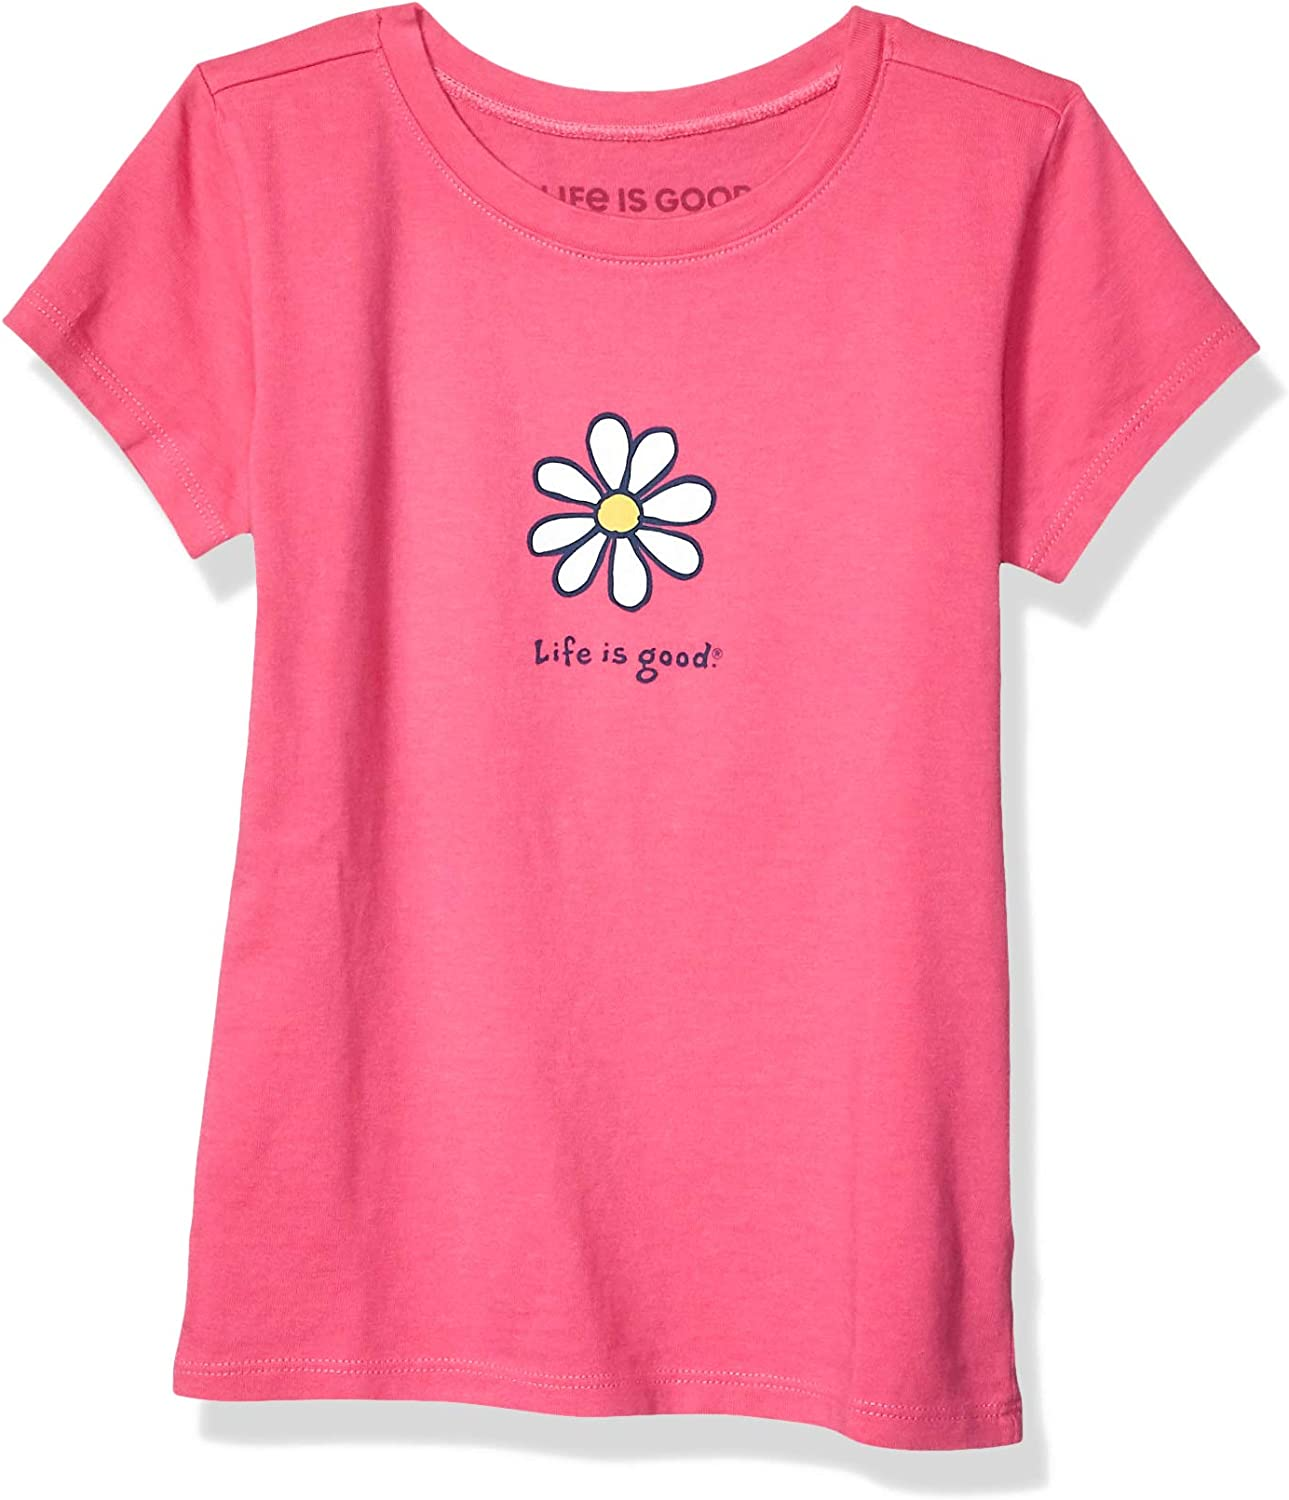 Life is Good Girls Girls Crusher Tee Vintage